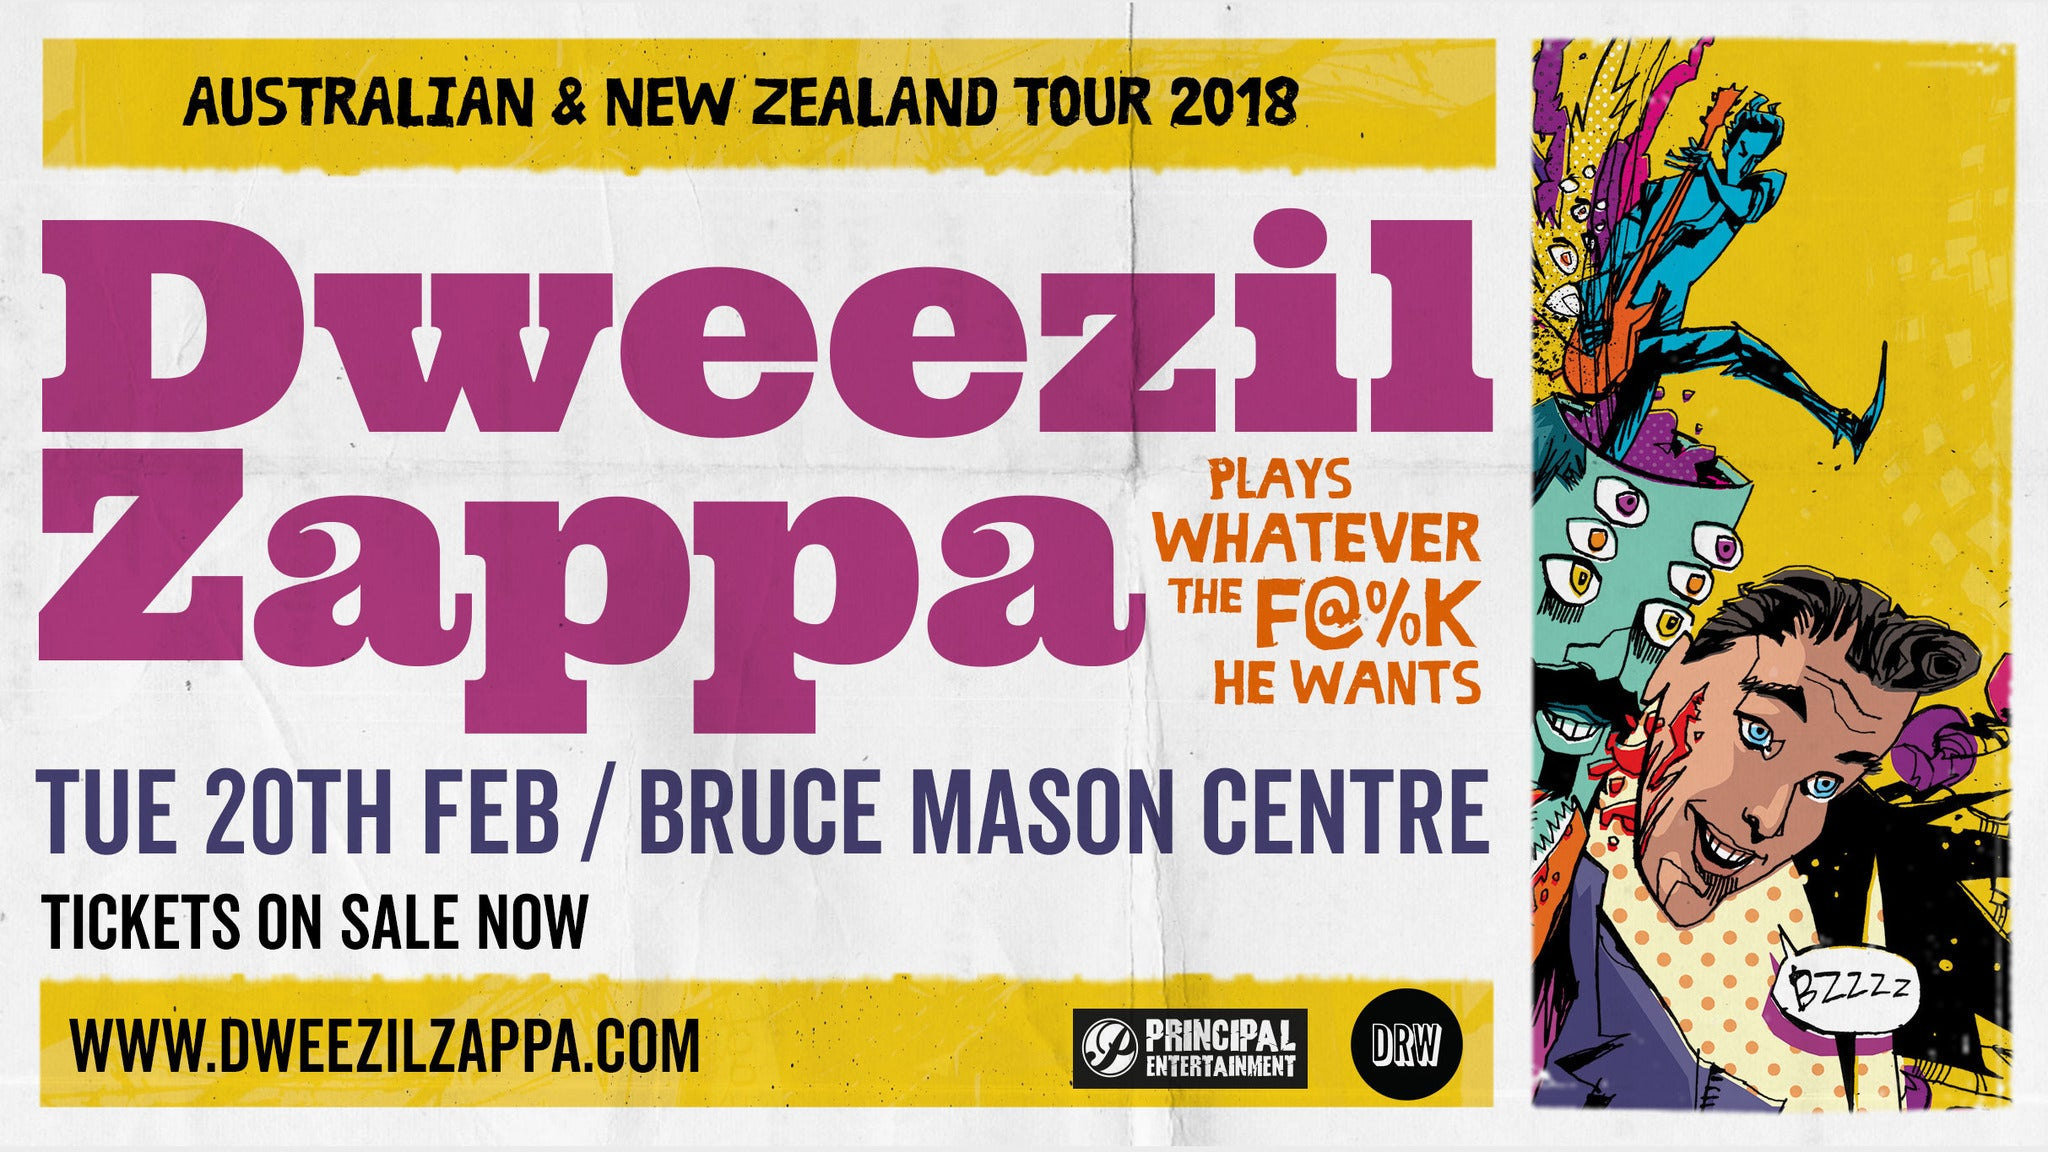 Dweezil Zappa Choice Cuts World Tour 2018 - Atlantic City, NJ 08401